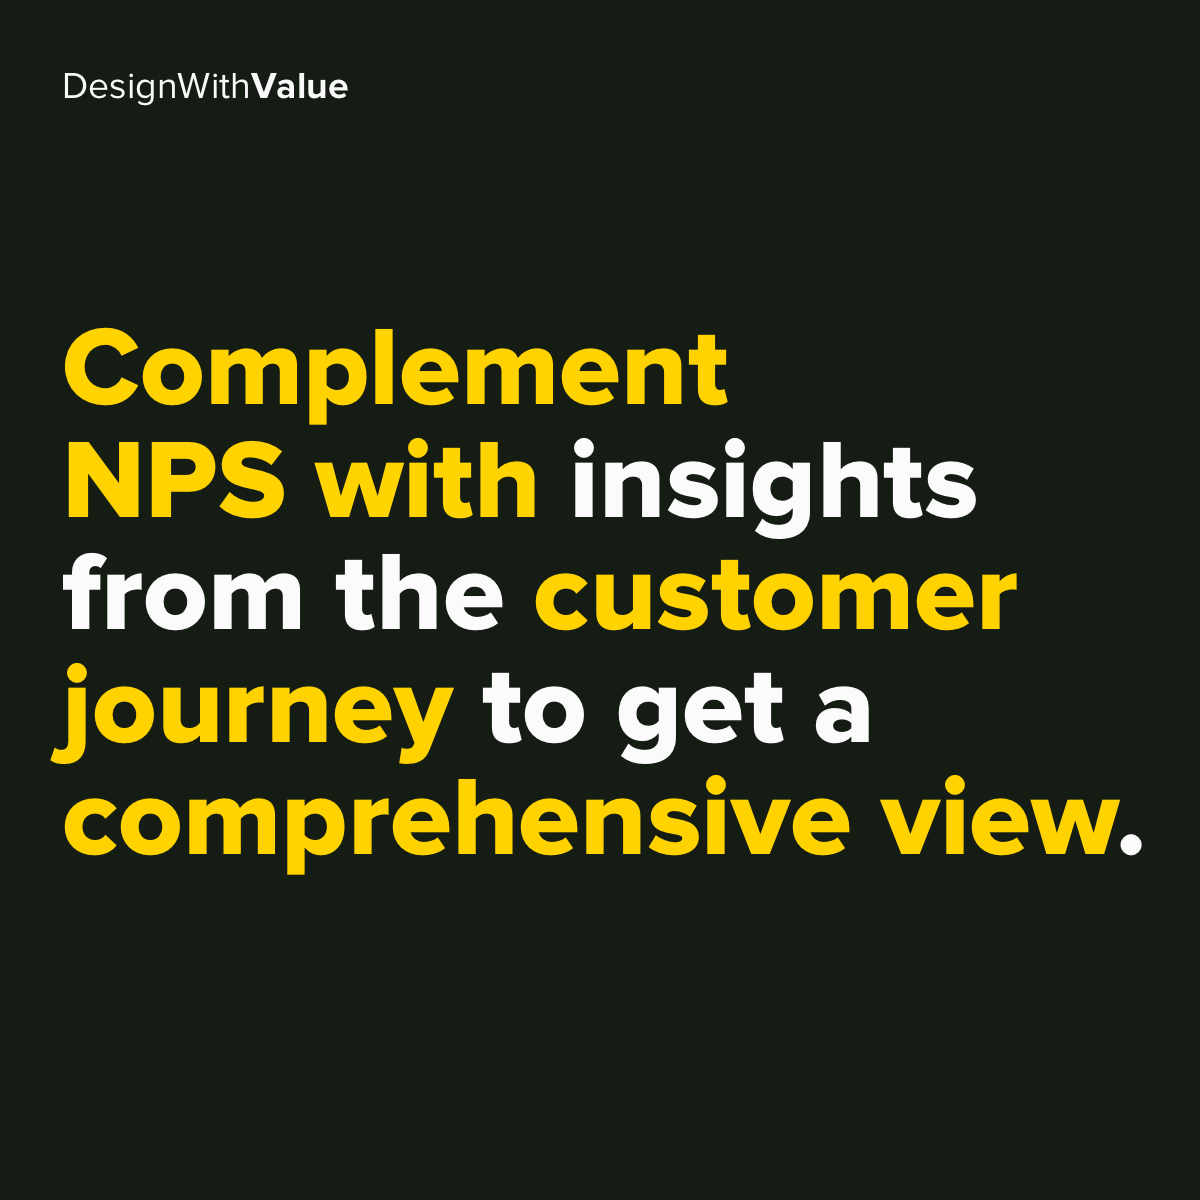 Compliment nps with insights from the customer journey to get a comprehensive view.